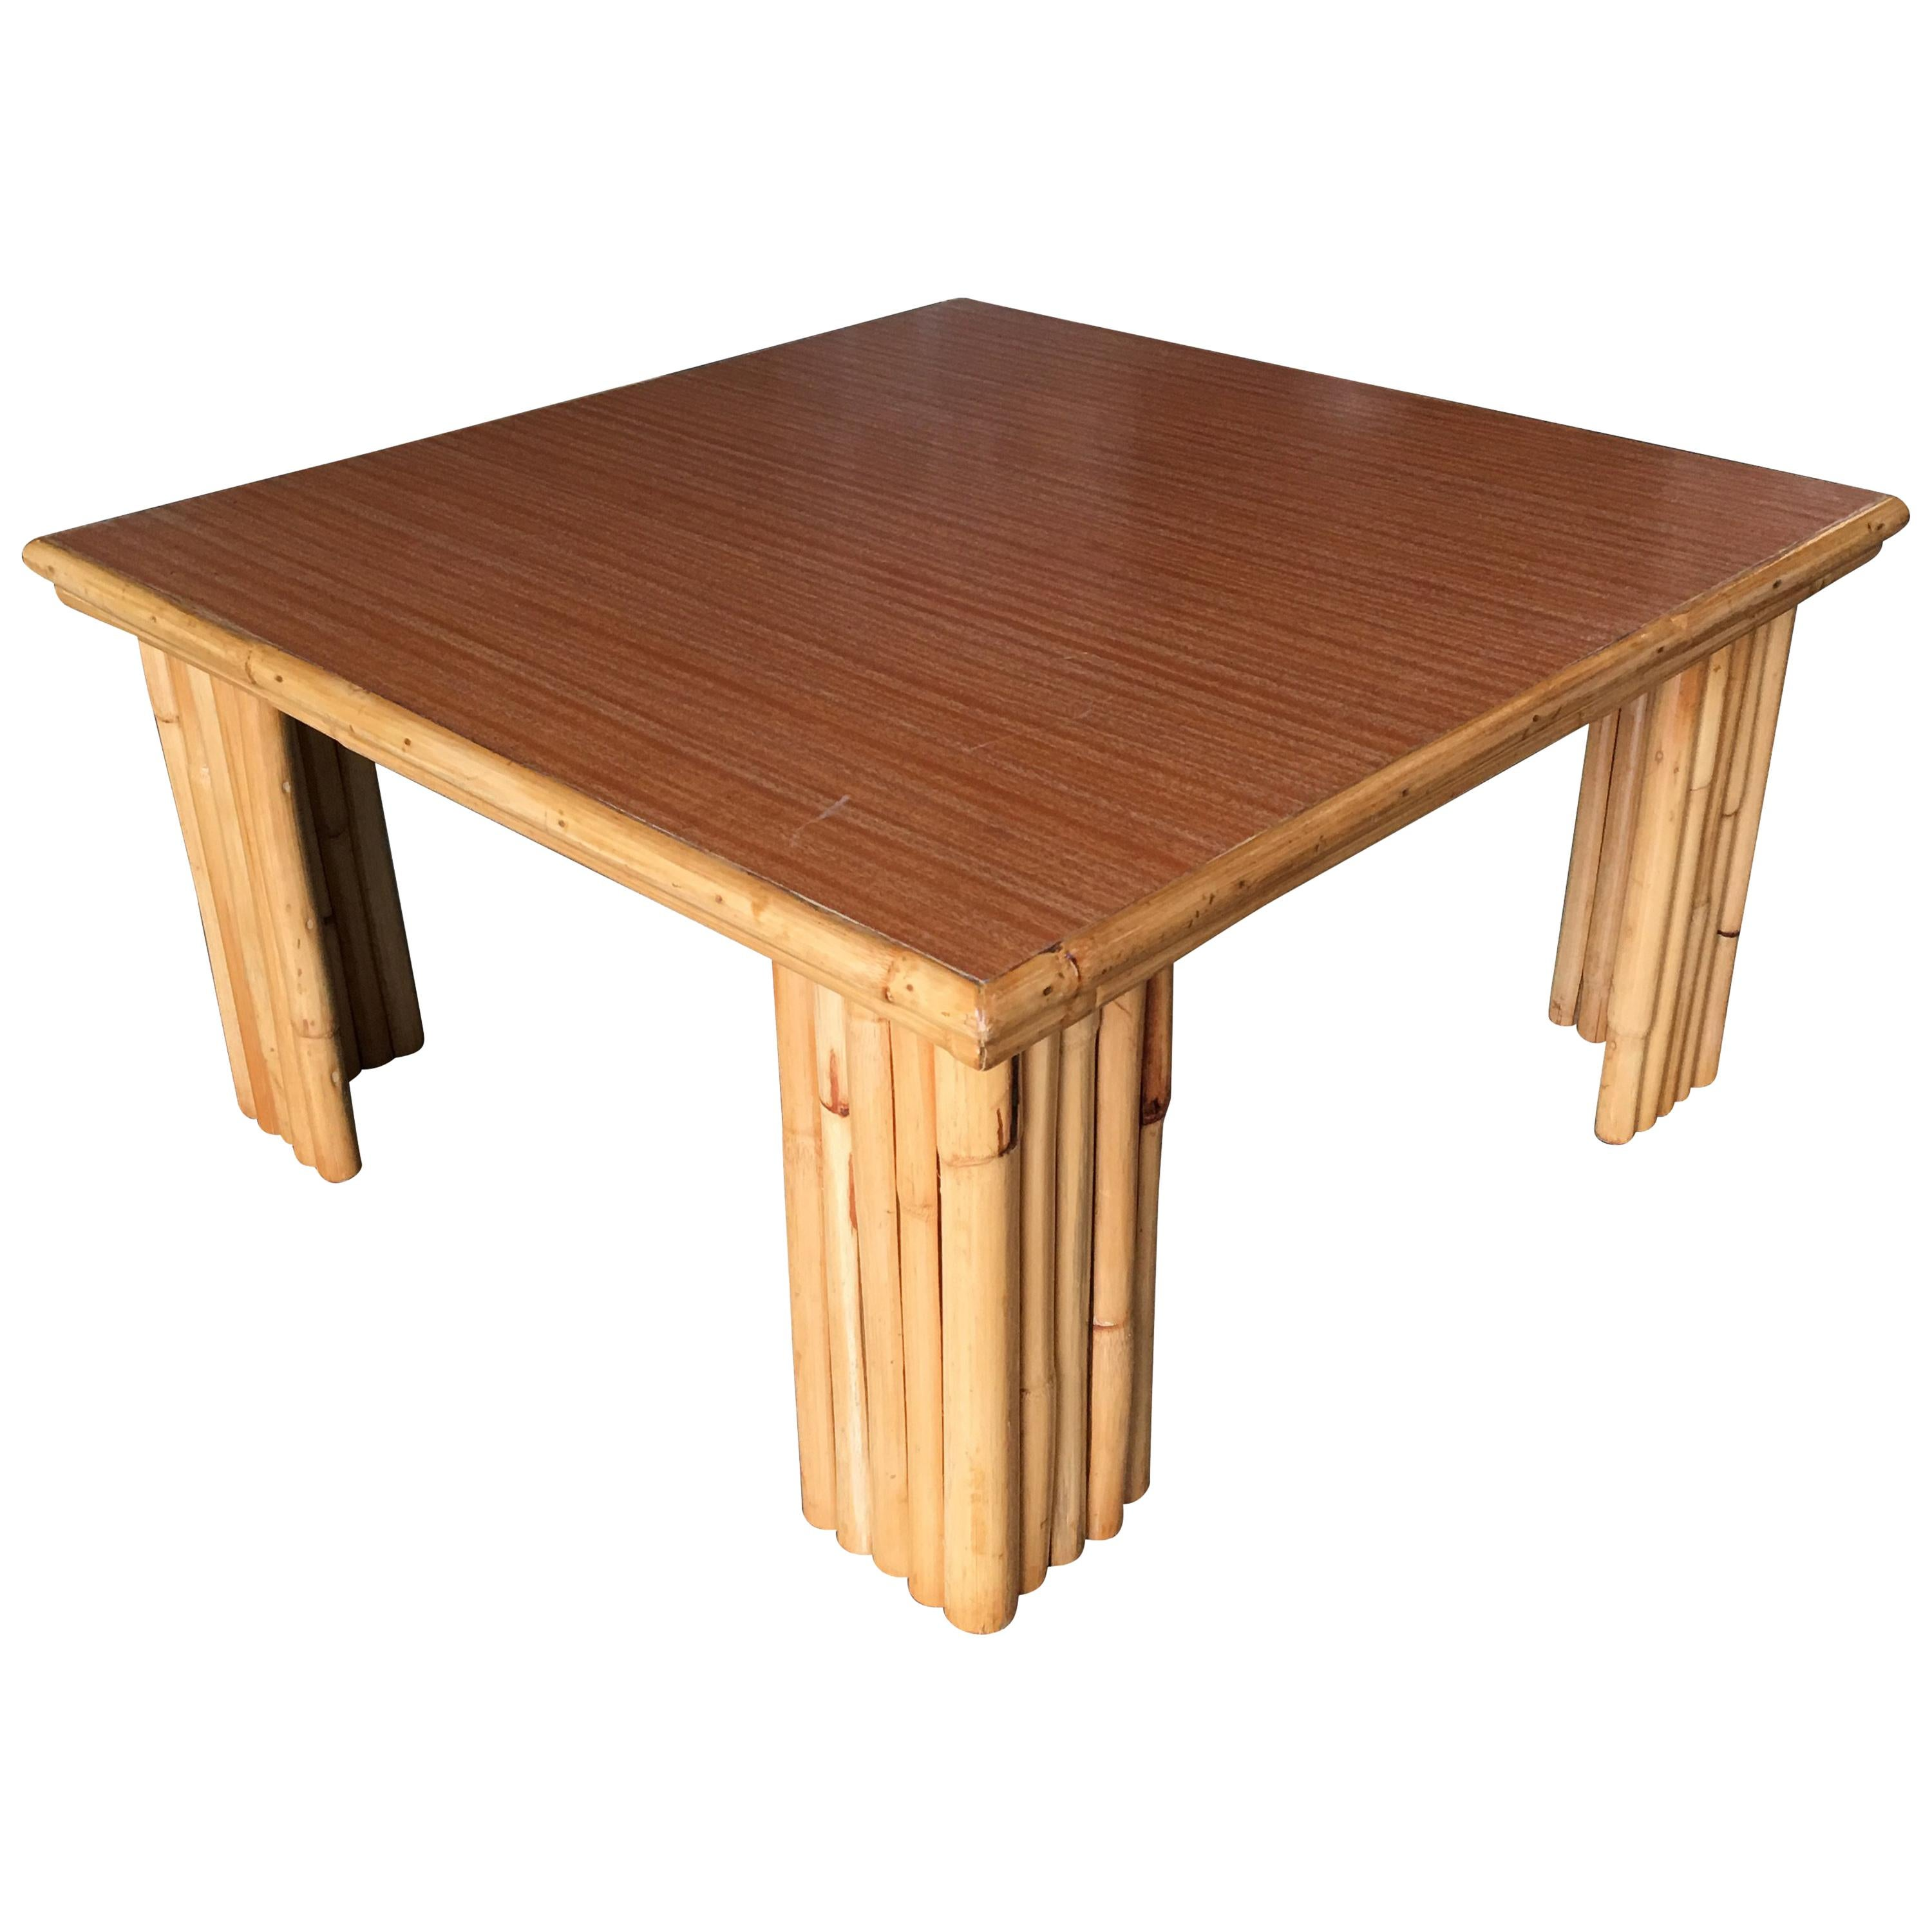 Extra Wide Rattan Coffee Table with Formica Top